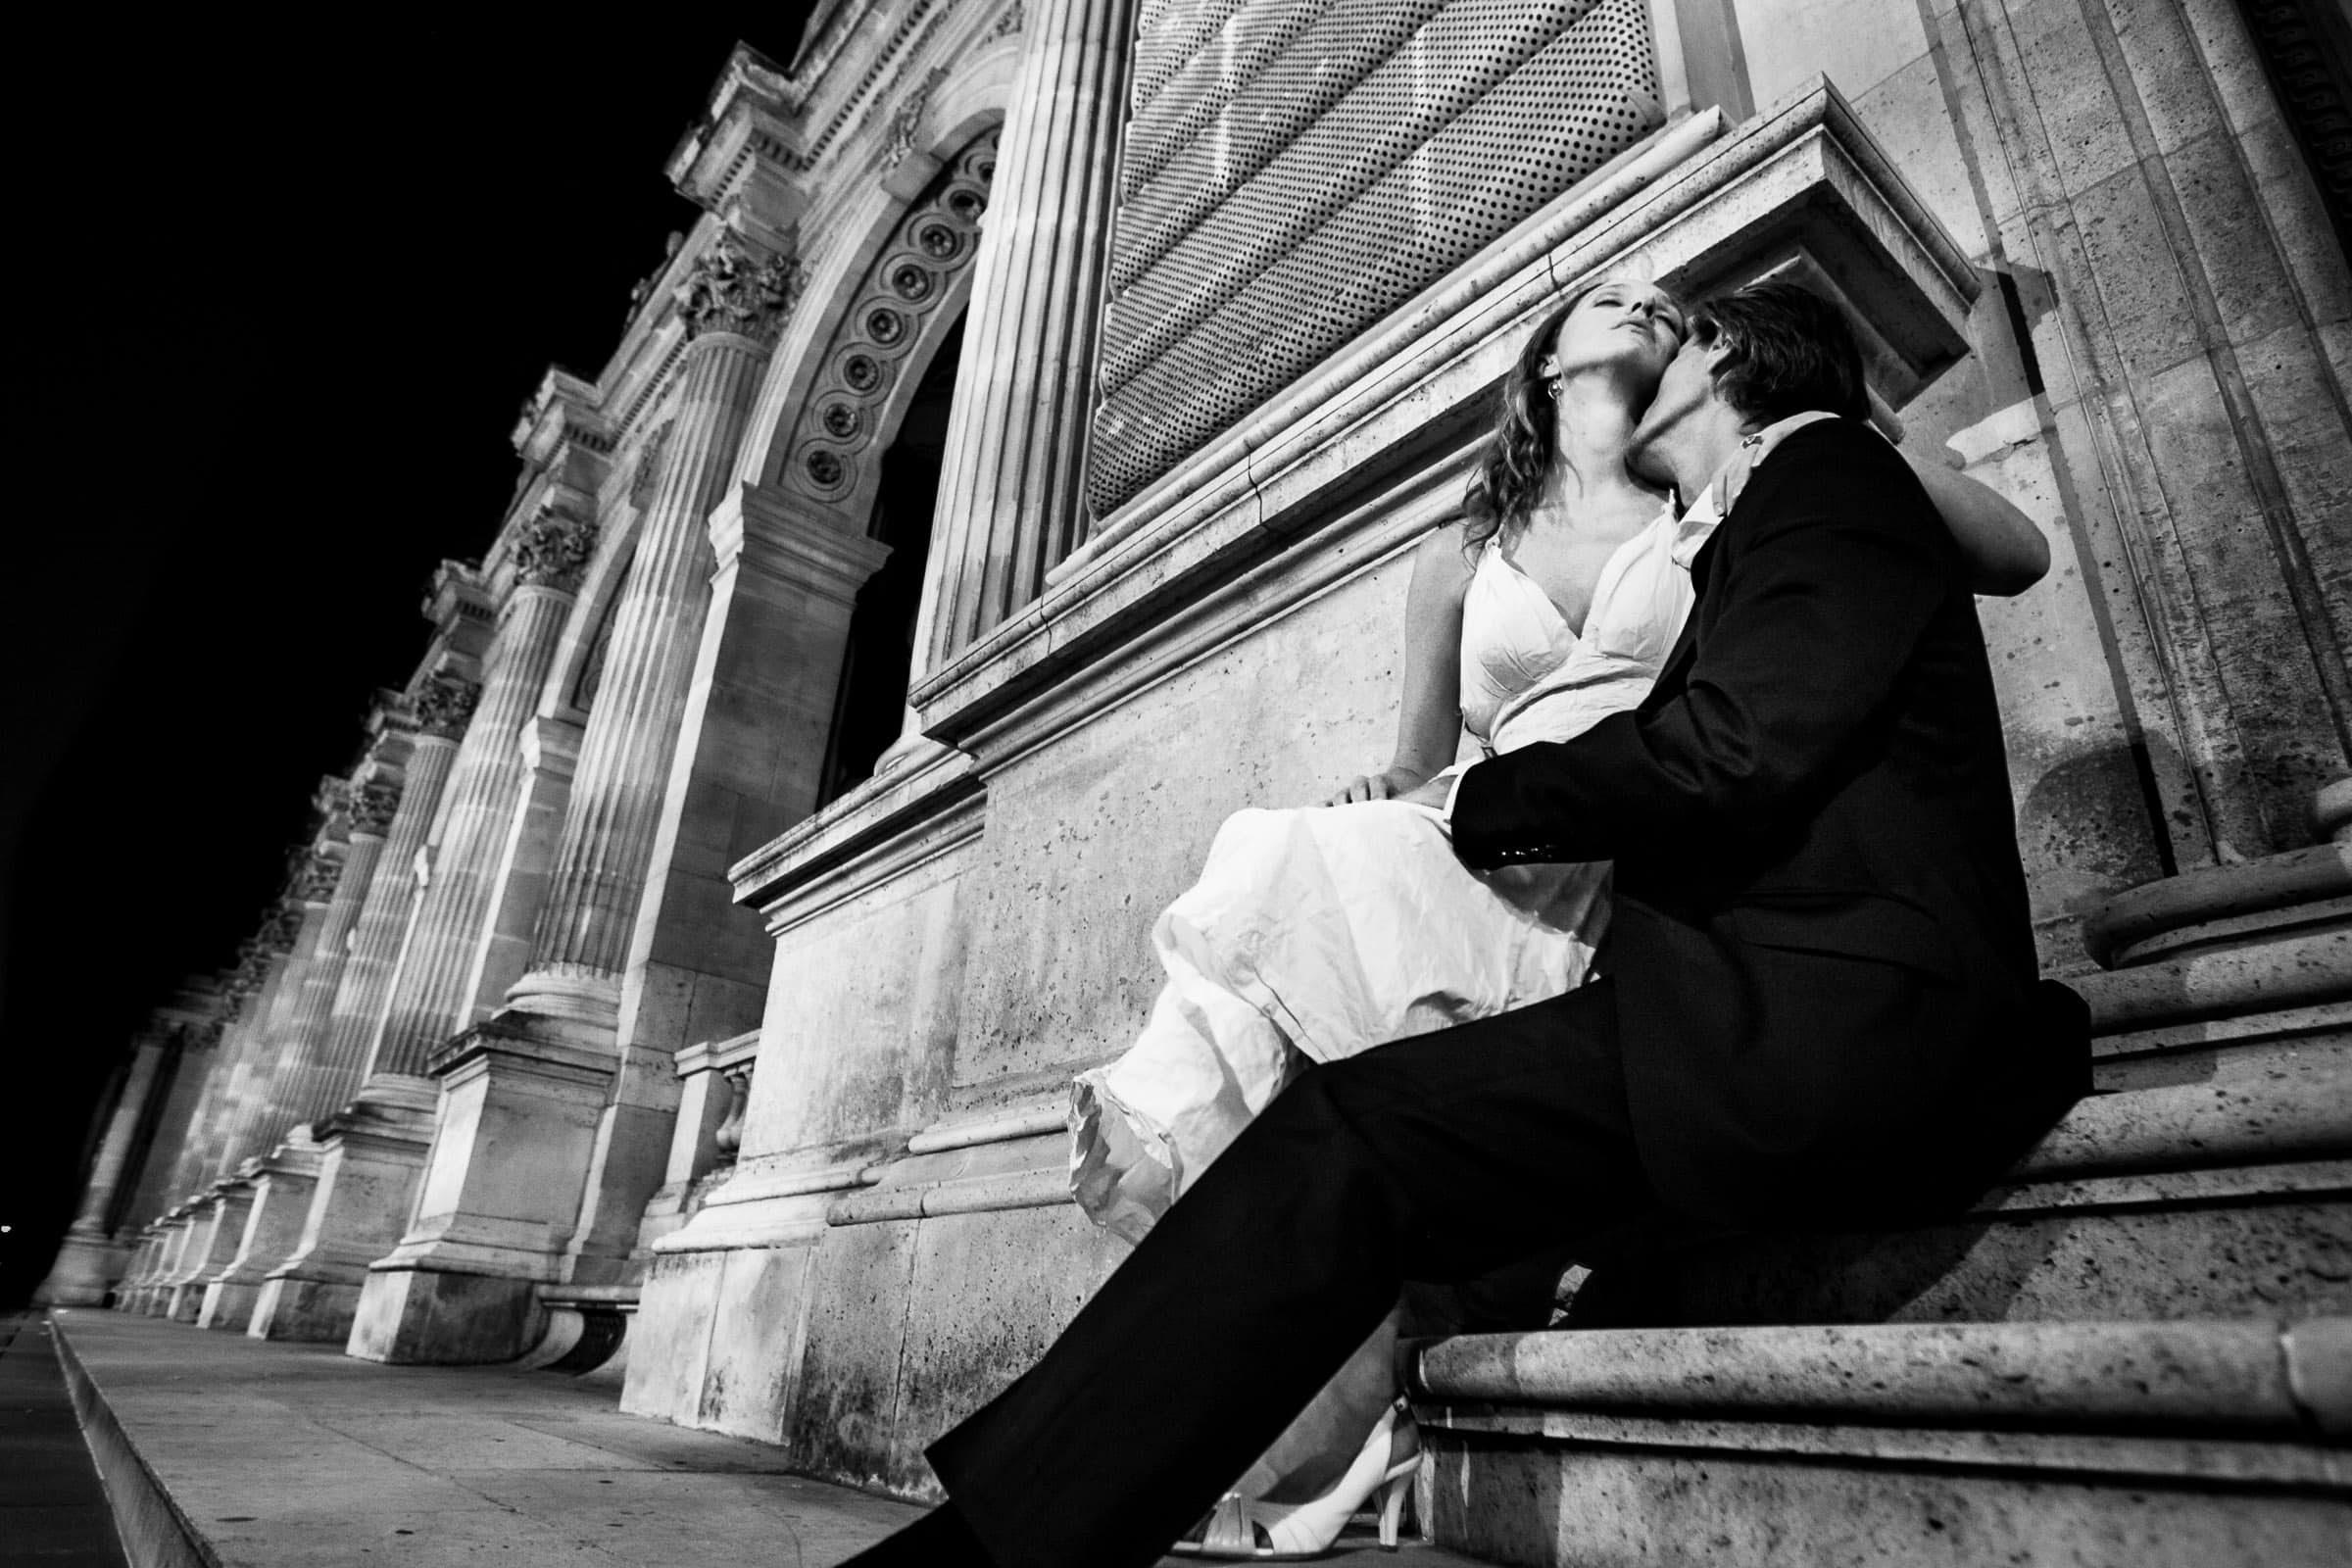 Bride and groom embracing outside the Louvre at night during their Paris engagement date